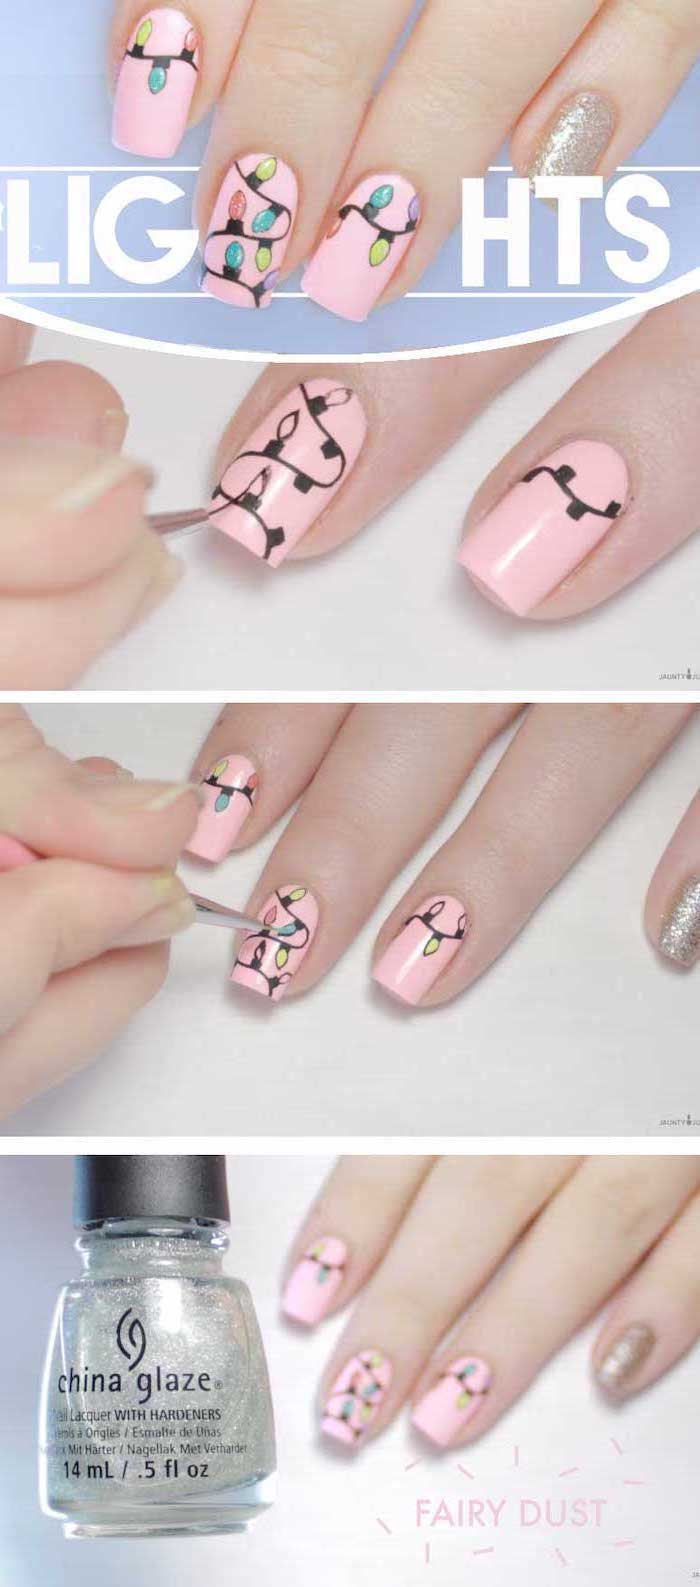 photo collage of step by step diy tutorial, different color nails, christmas lights decorations on each nail, pink nail polish